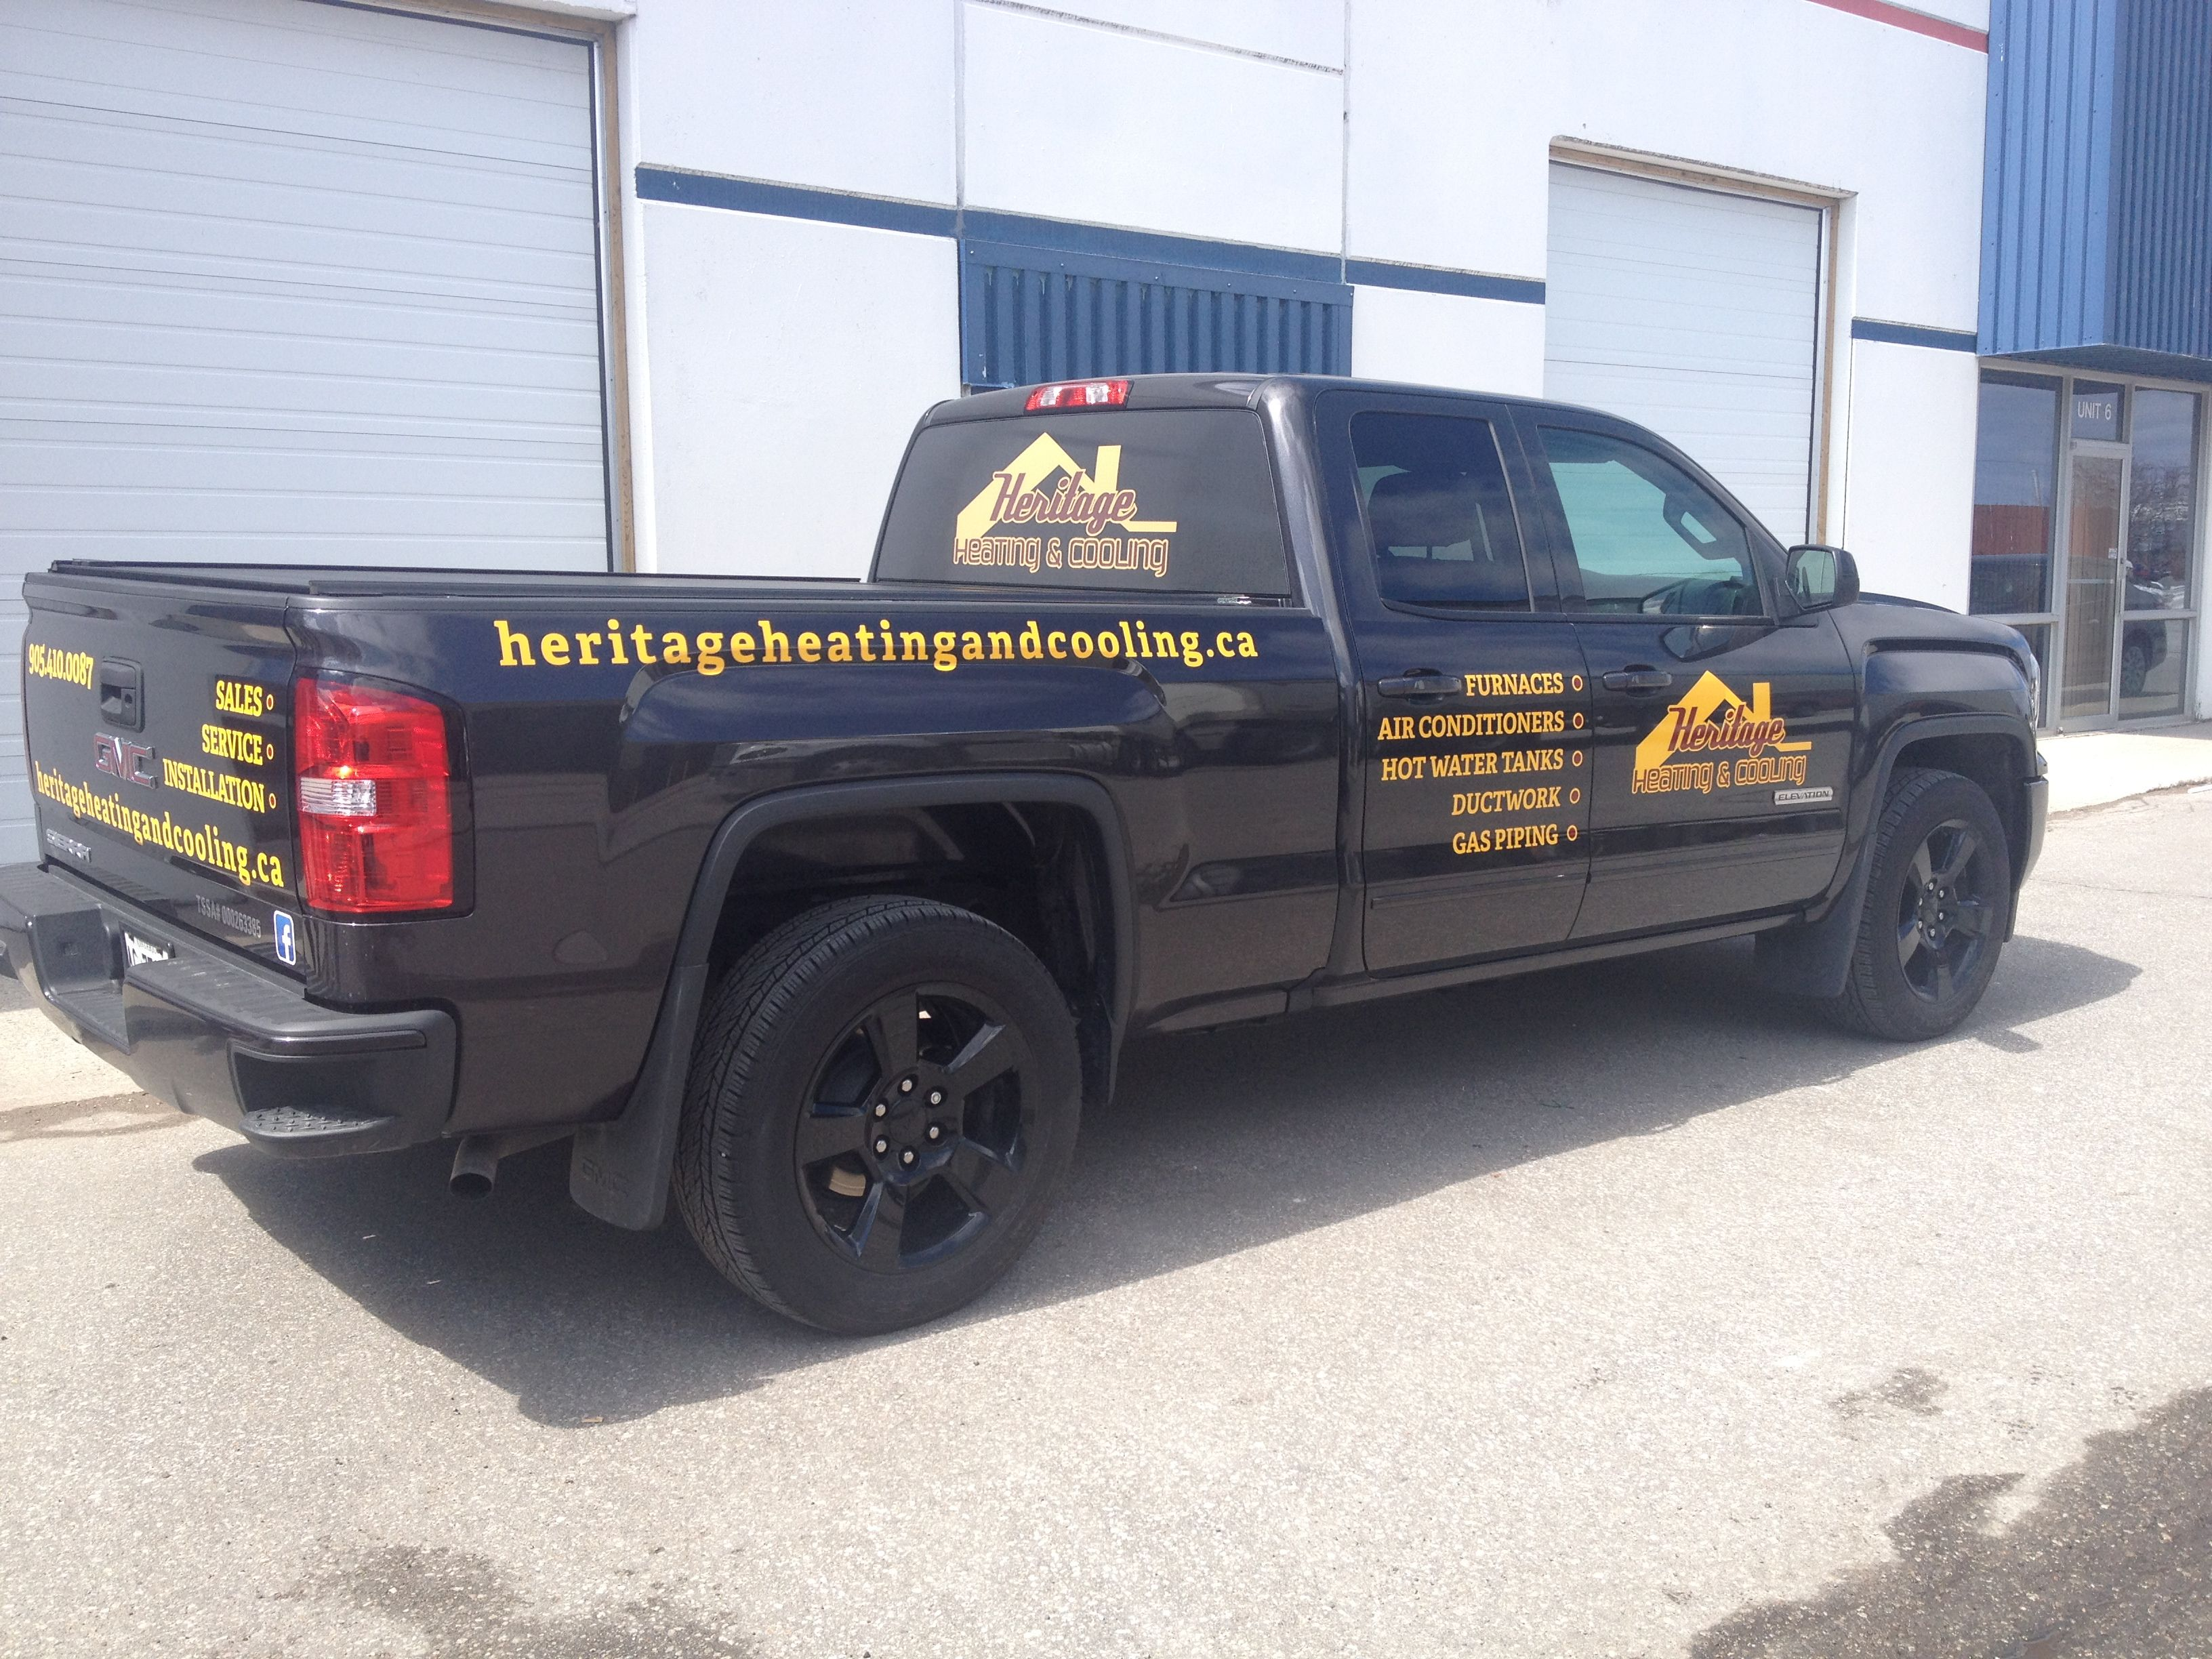 Some Fresh New Graphics For Heritage Heating Cooling Digital Print Perforated Vinyl On The